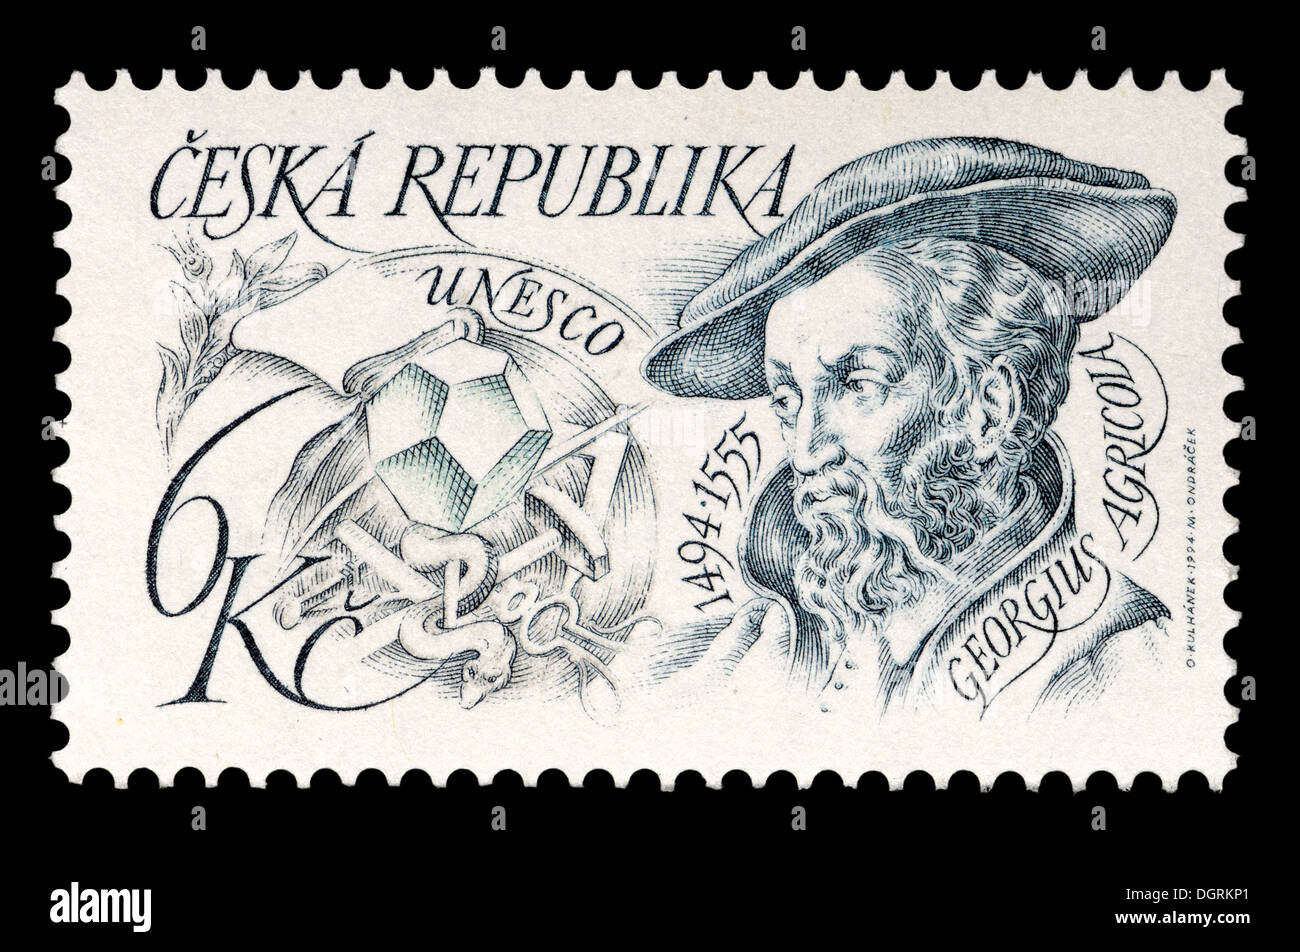 Postage stamp from Czech Republic - Gerogius Agricola (1494-1555) German scholar and scientist - 'the father of mineralogy' - Stock Image